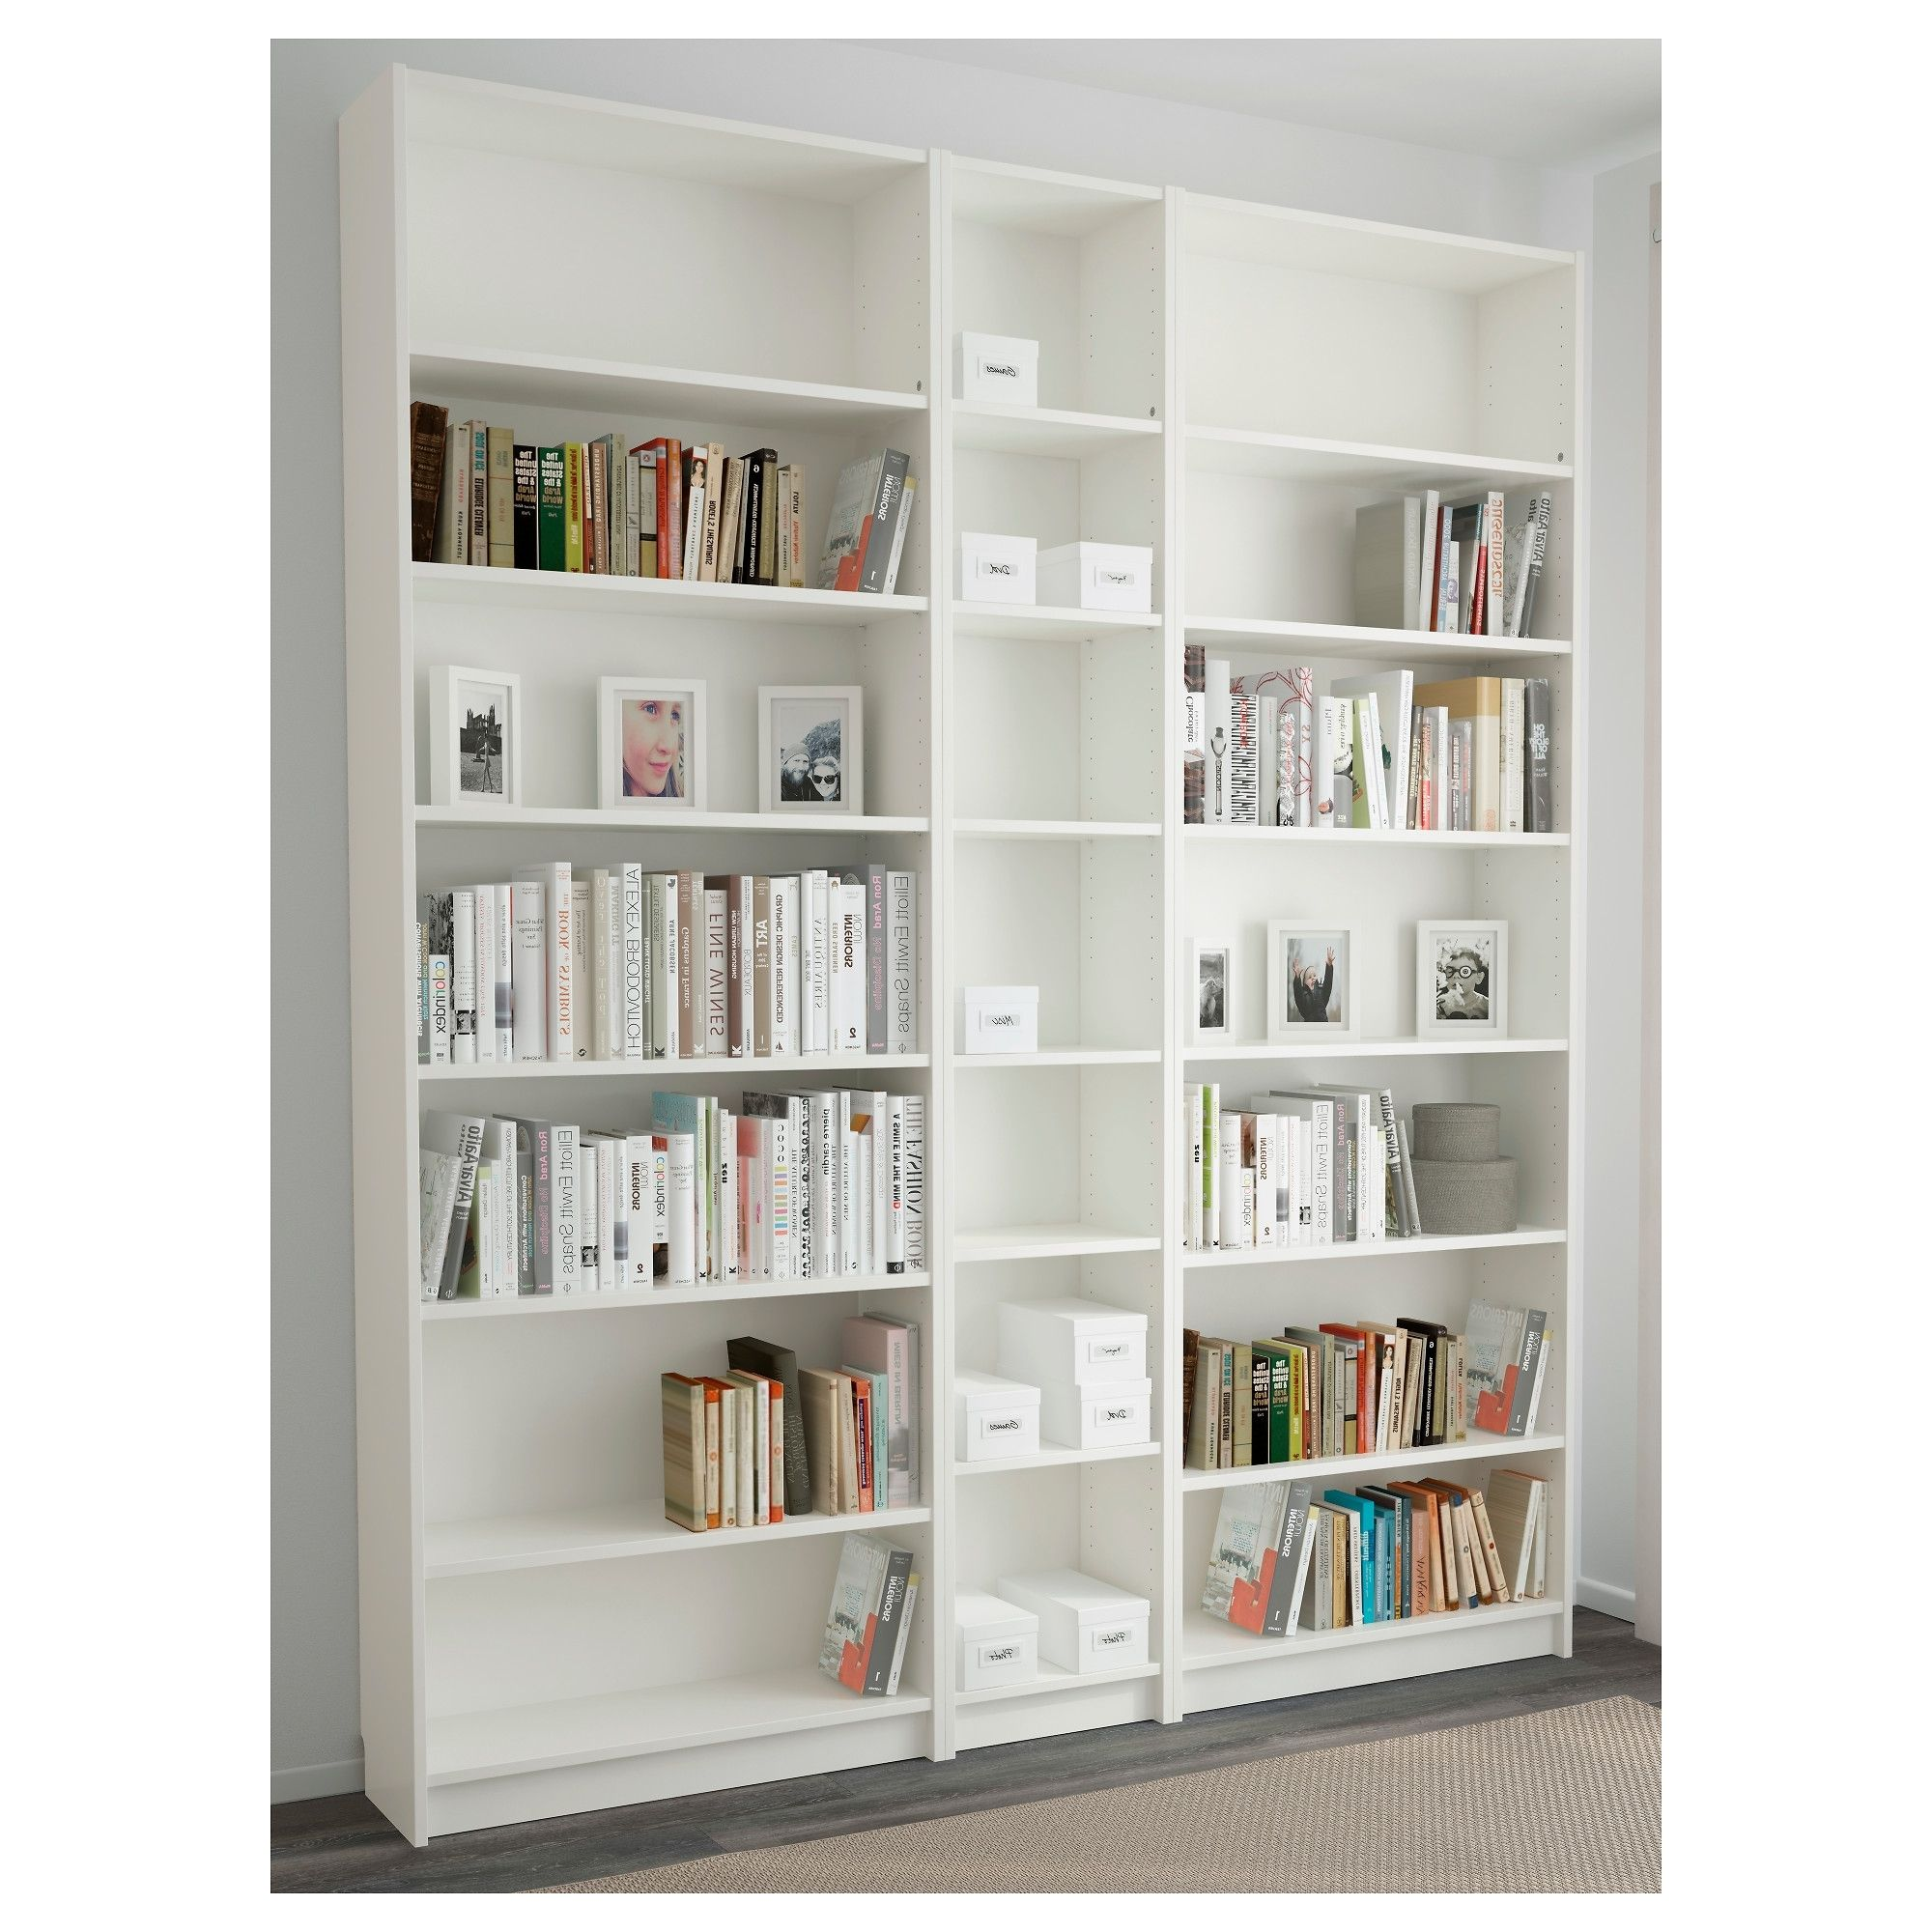 Image Result For Ikea Billy Bookcase Configurations